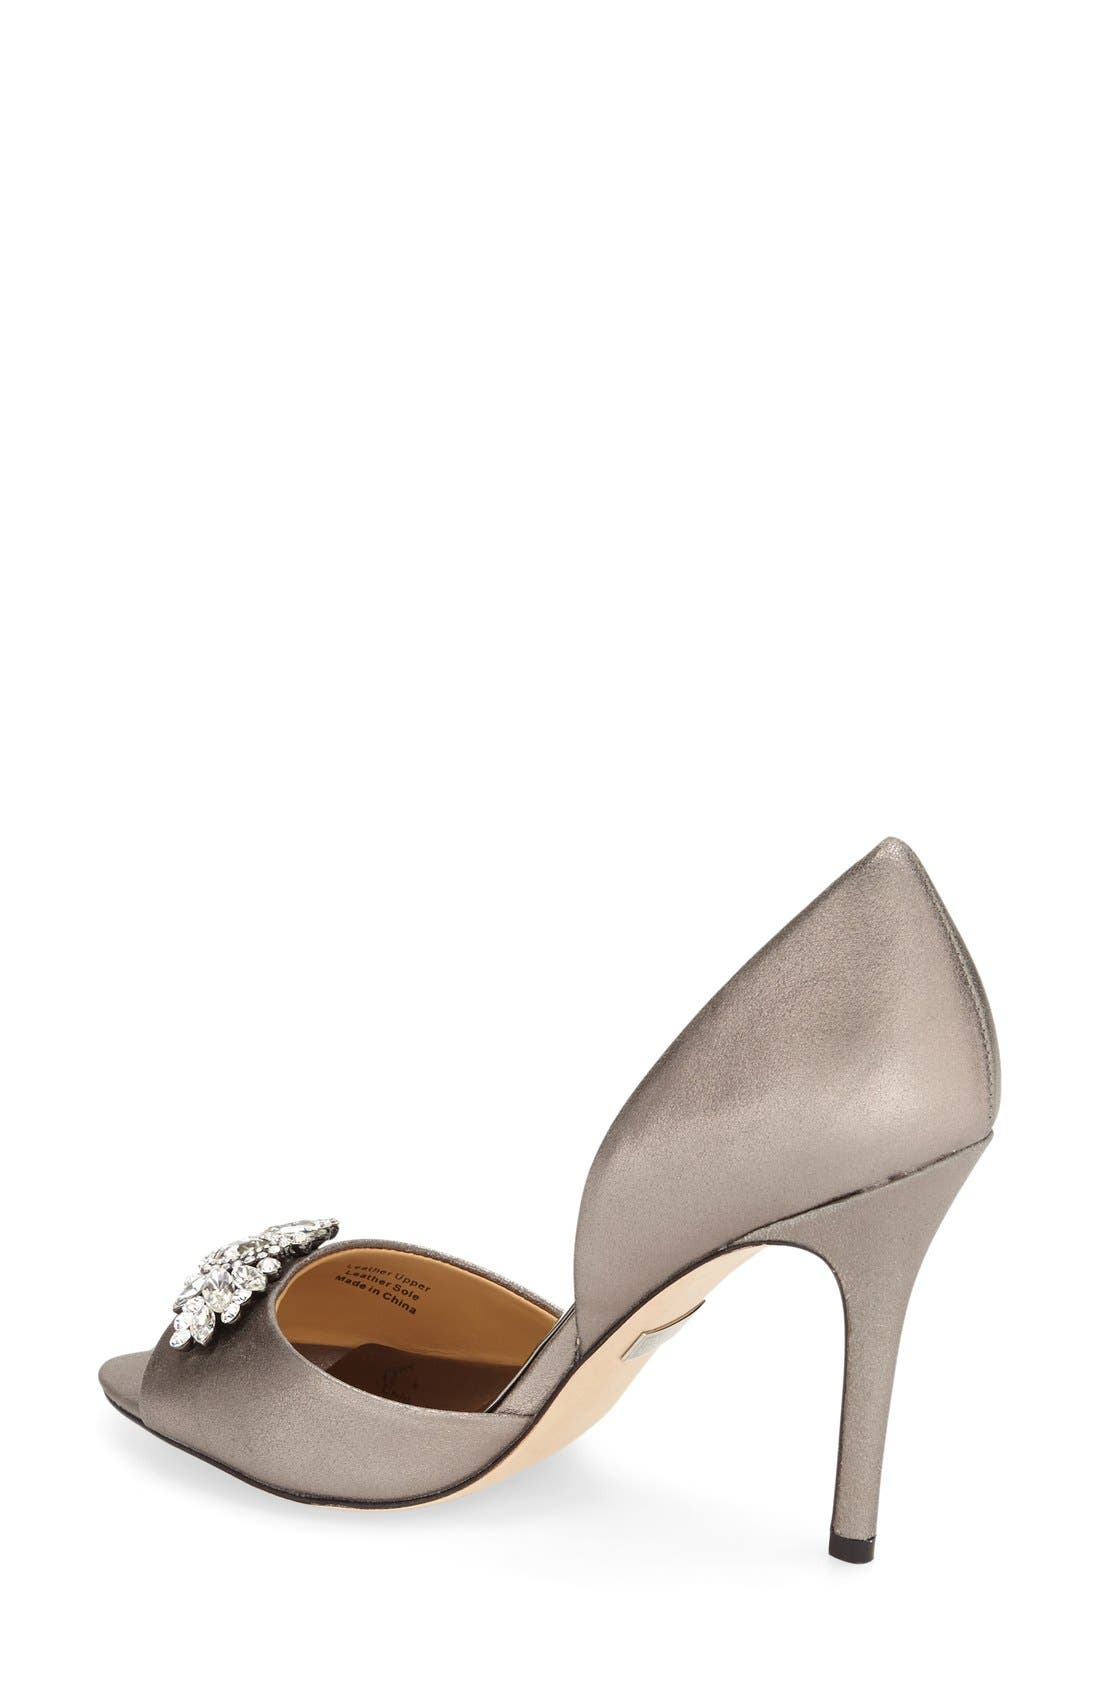 Alternate Image 2  - Badgley Mischka 'Sugar' d'Orsay Pump (Women)